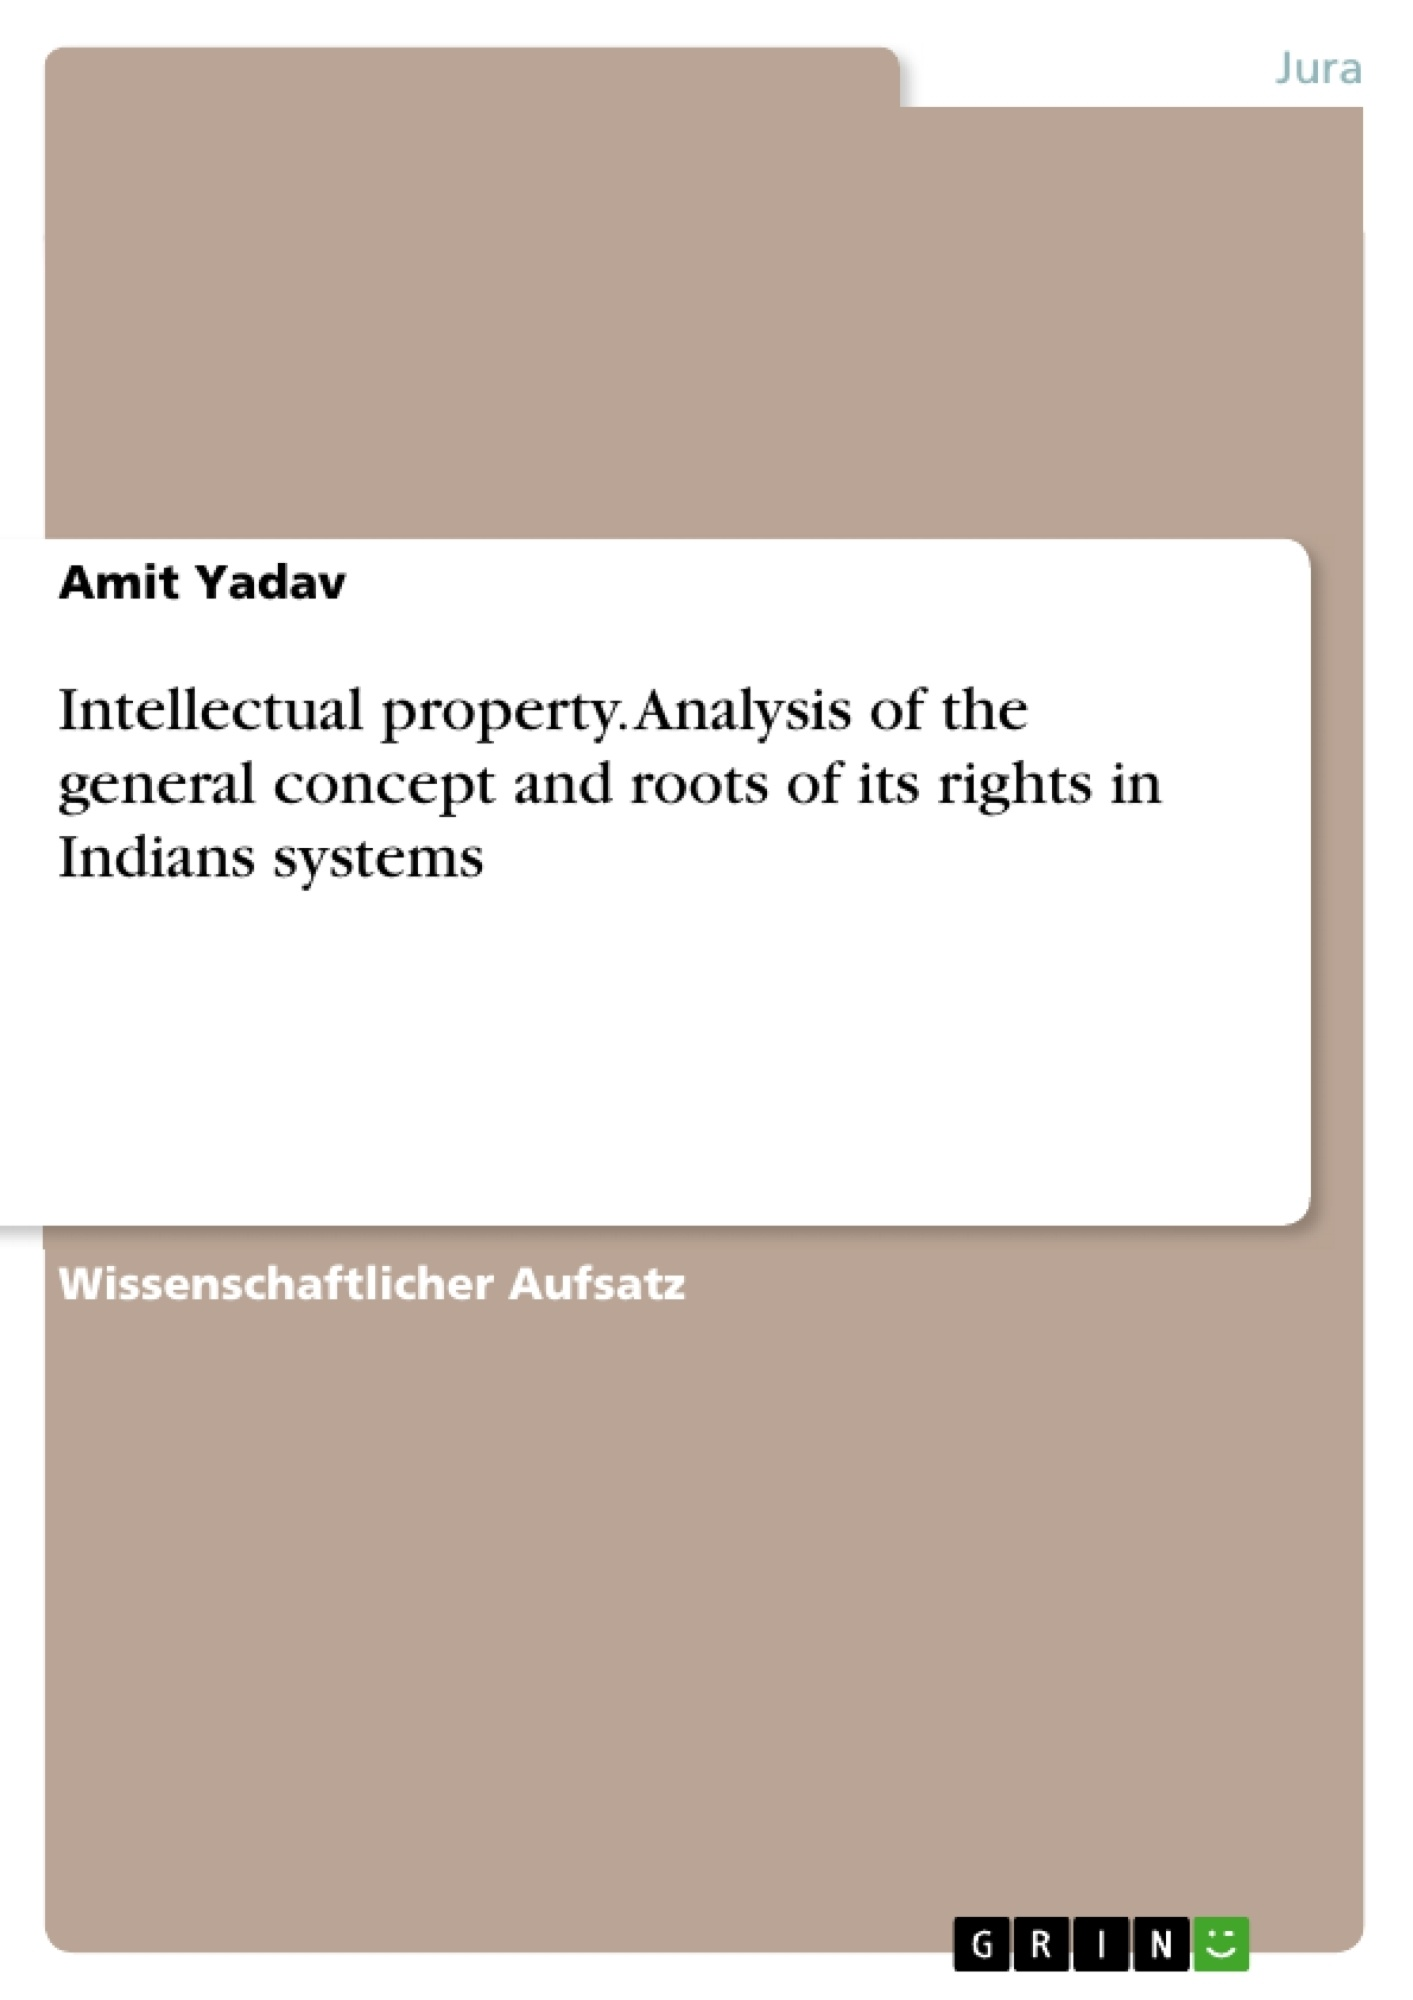 Titel: Intellectual property. Analysis of the general concept and roots of its rights in Indians systems